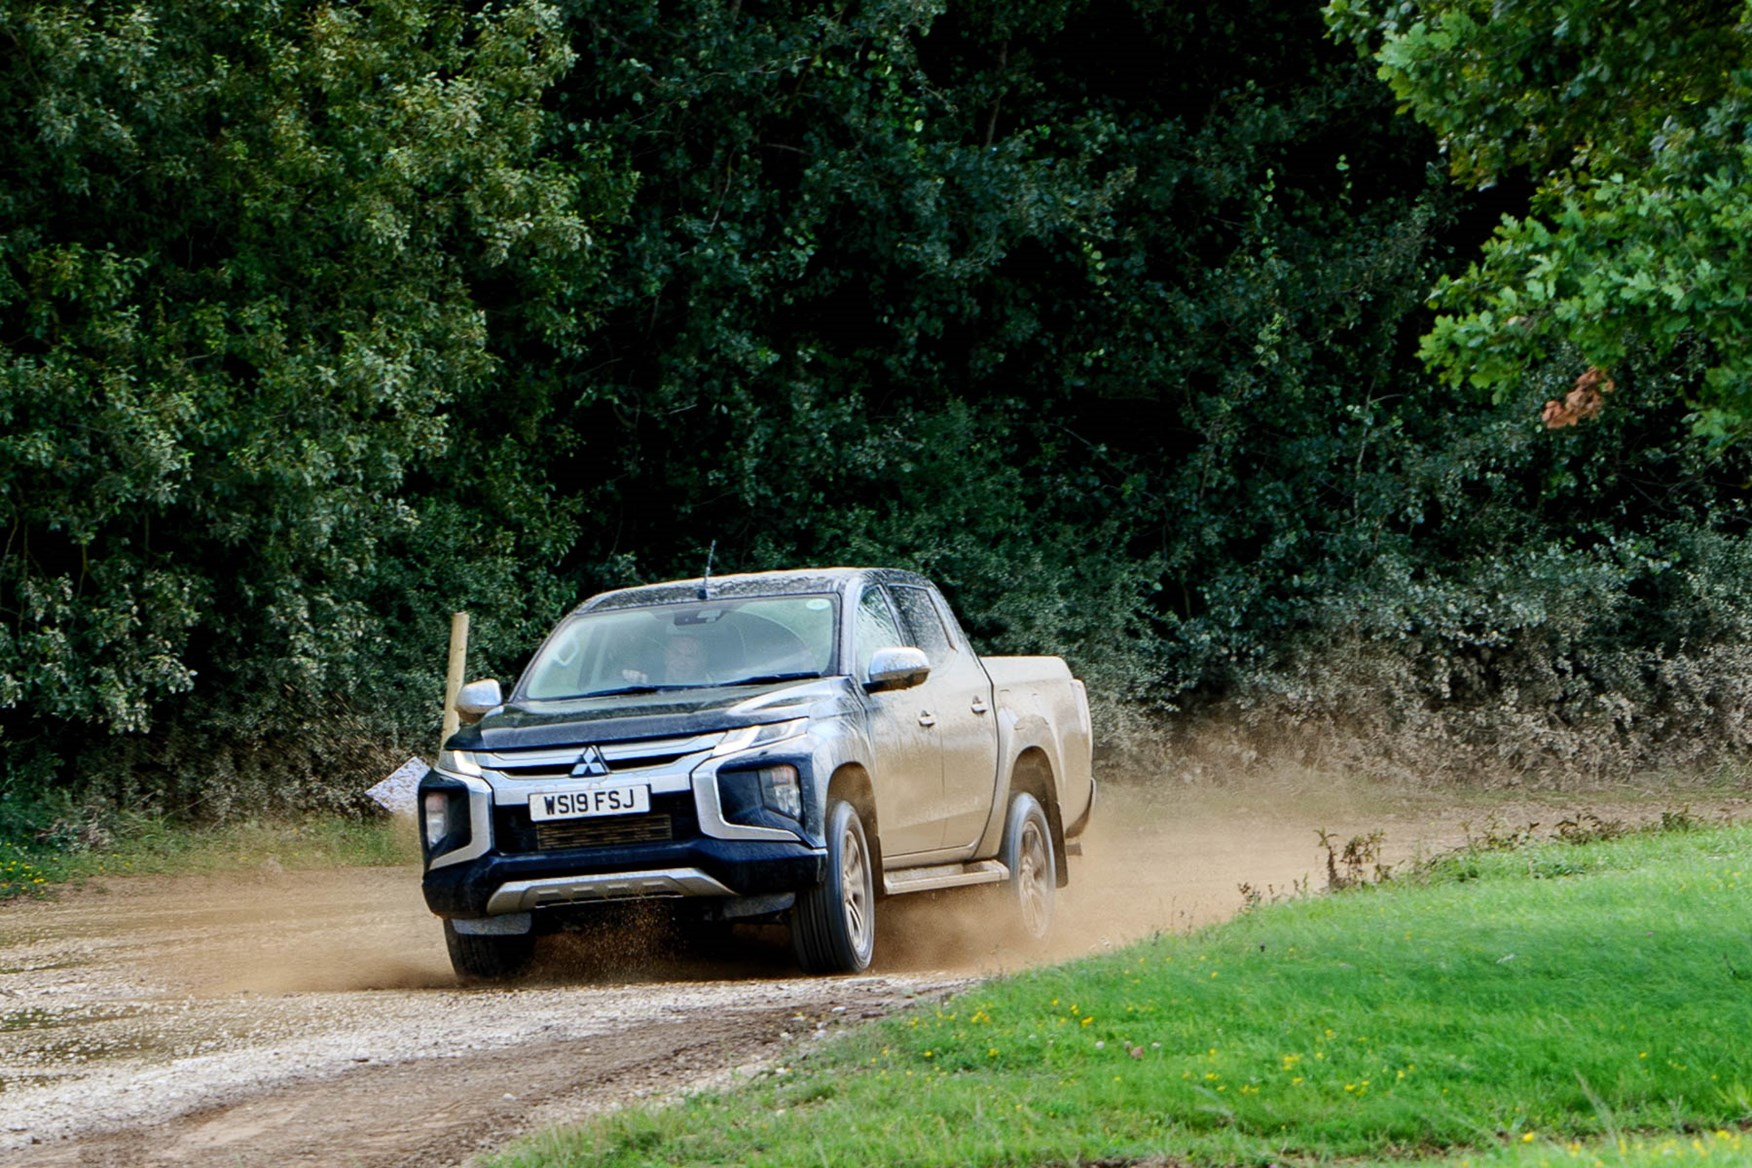 2019 Mitsubishi L200, Jet Black, driving off road